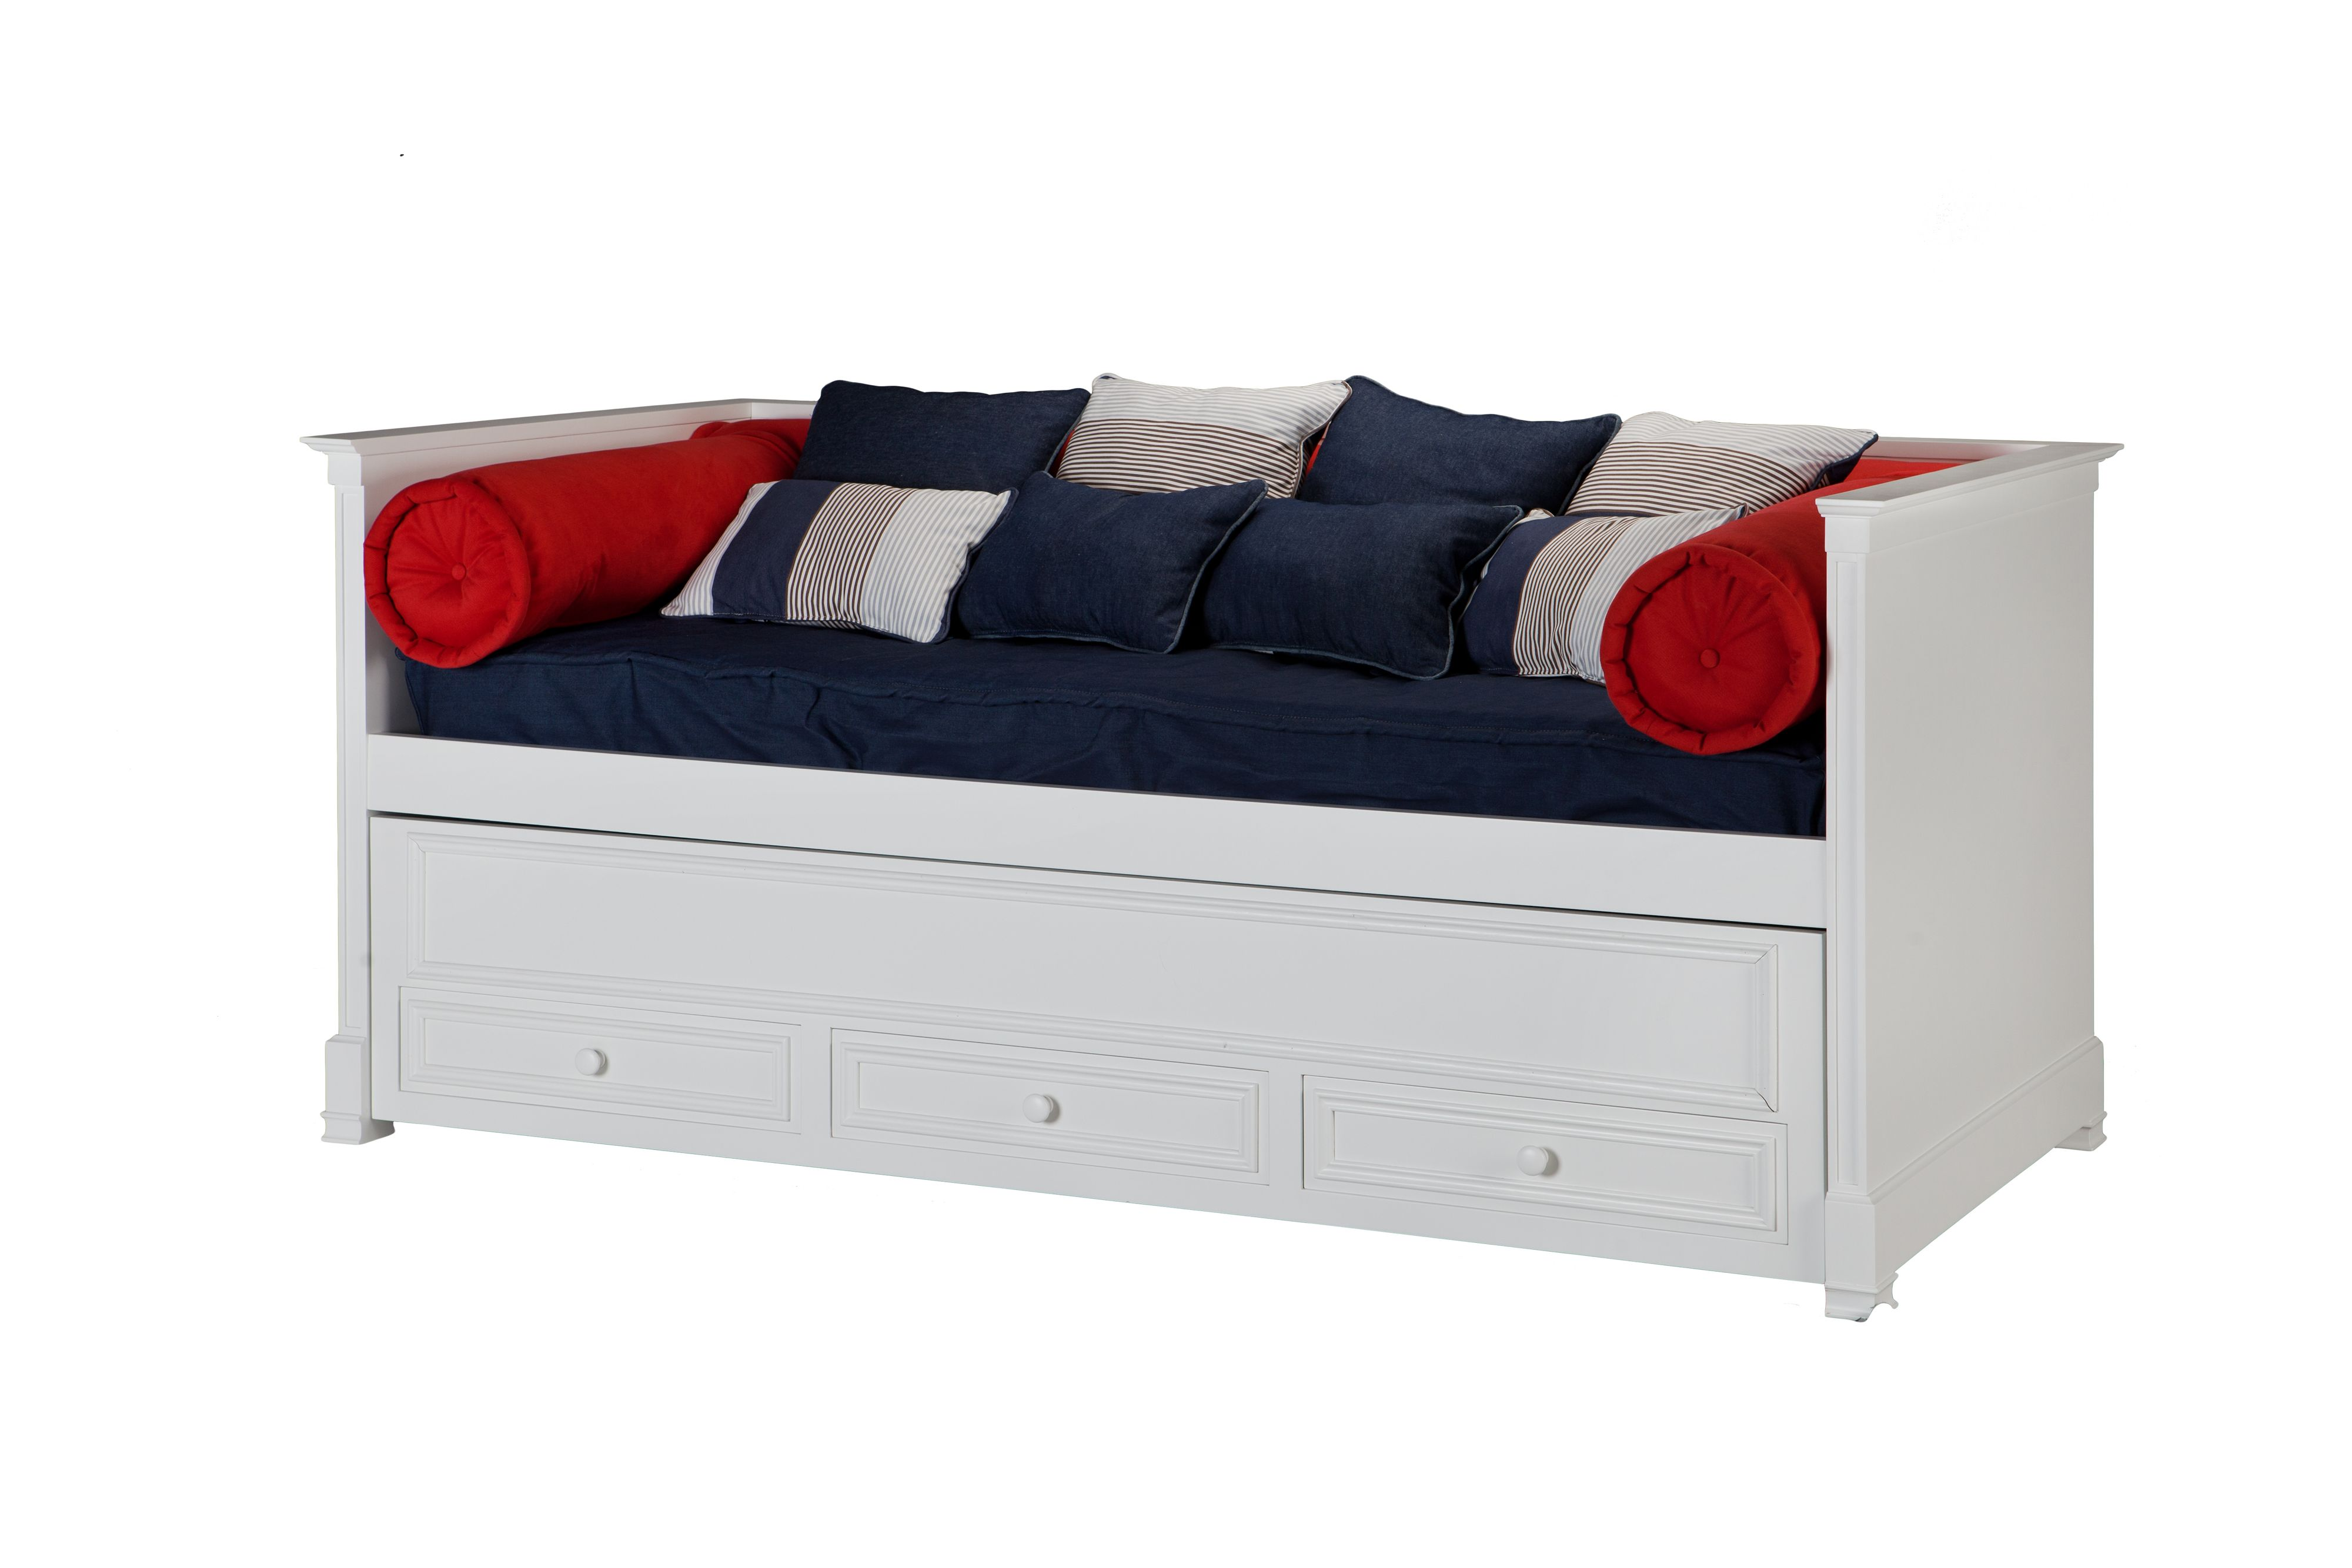 Caprice Day Bed with Pull out Trundle